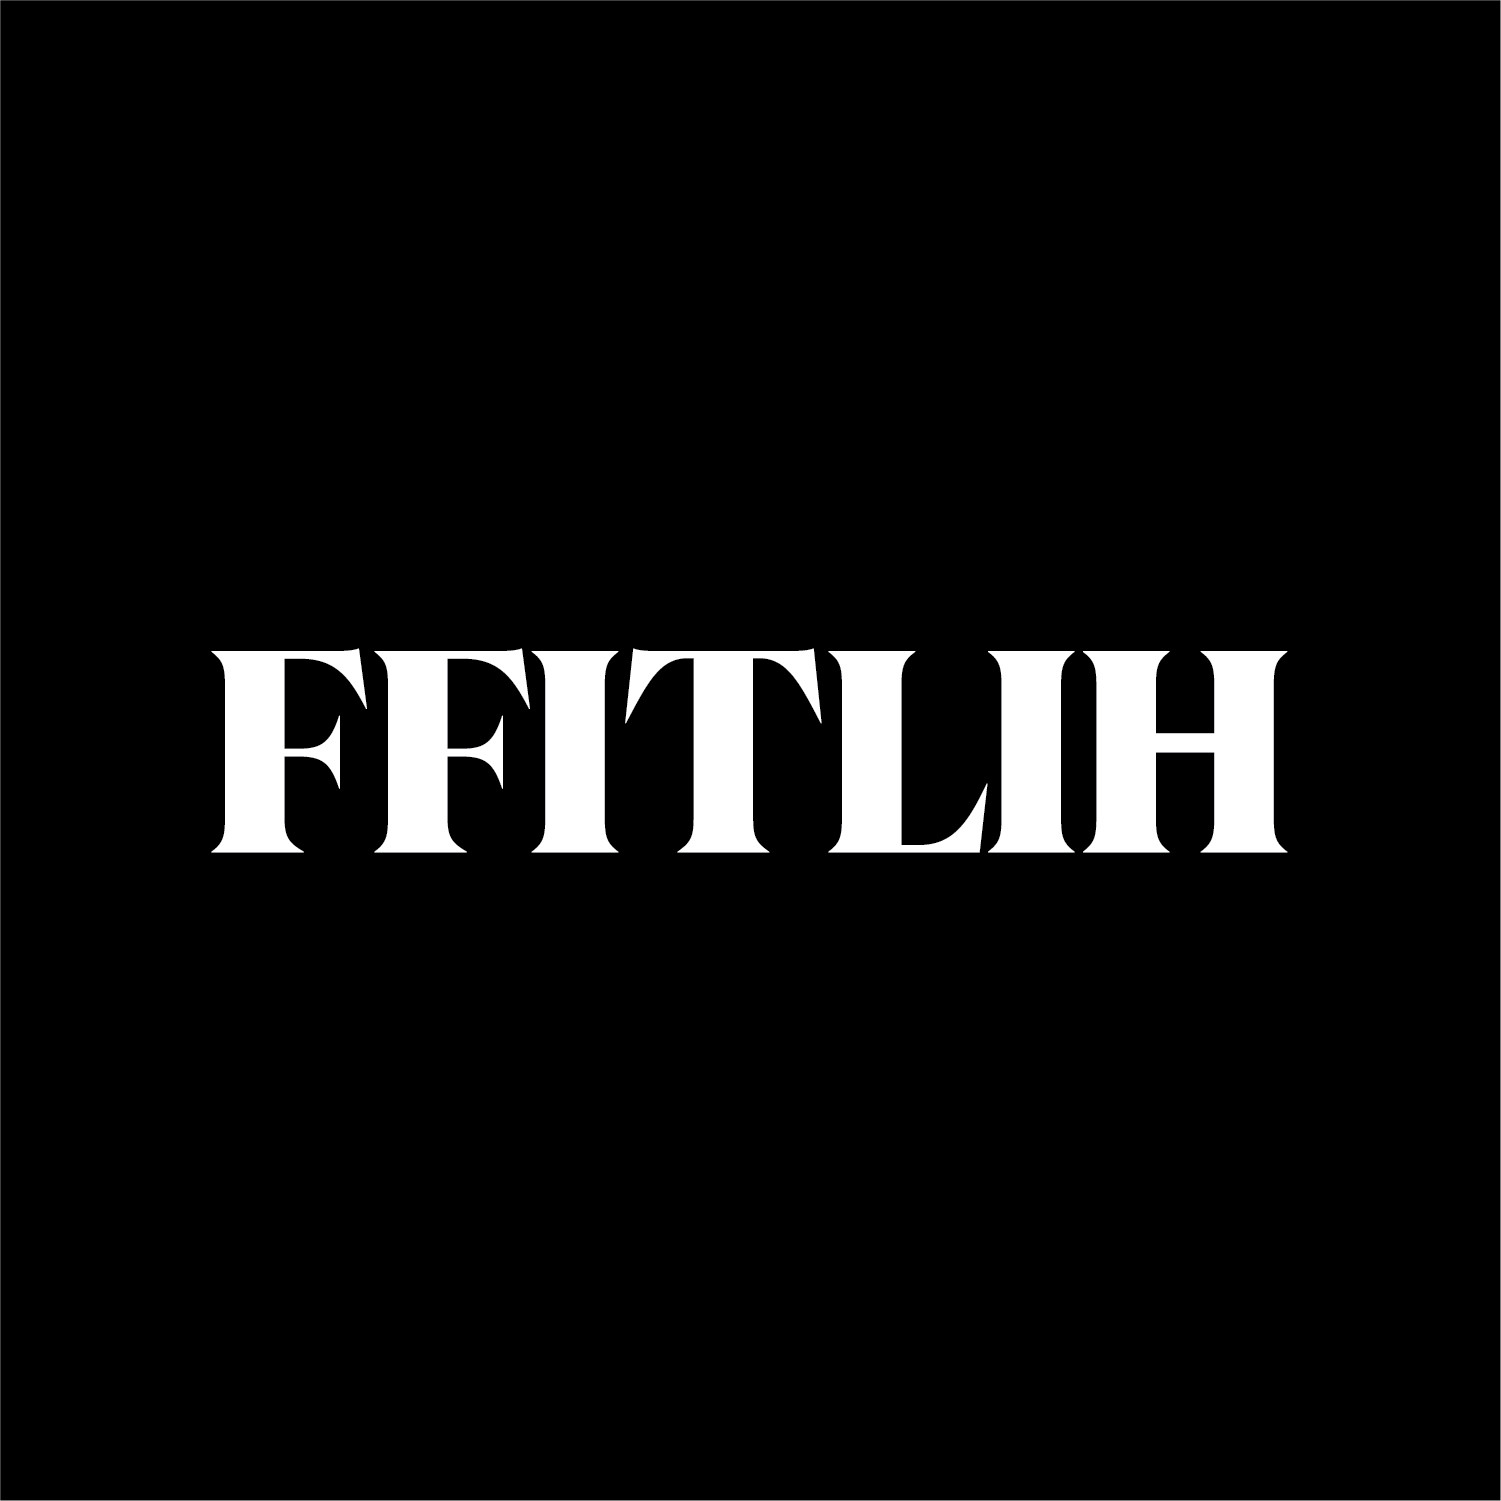 FFITLIH_FINAL LOGO_4-04.jpg